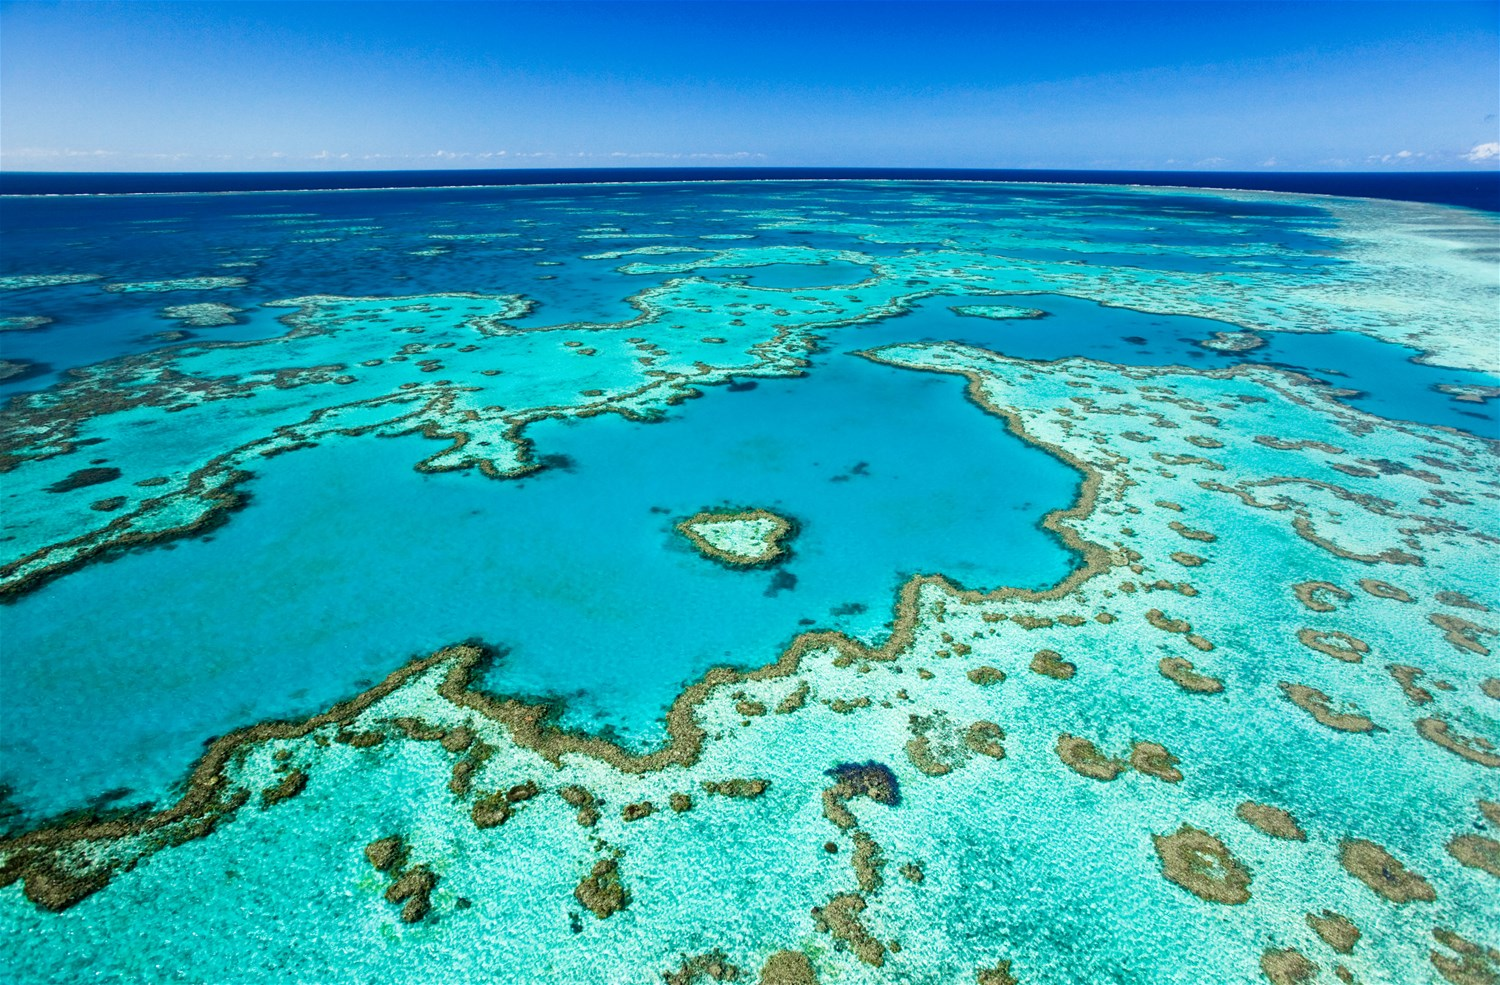 Islands of the Barrier Reef